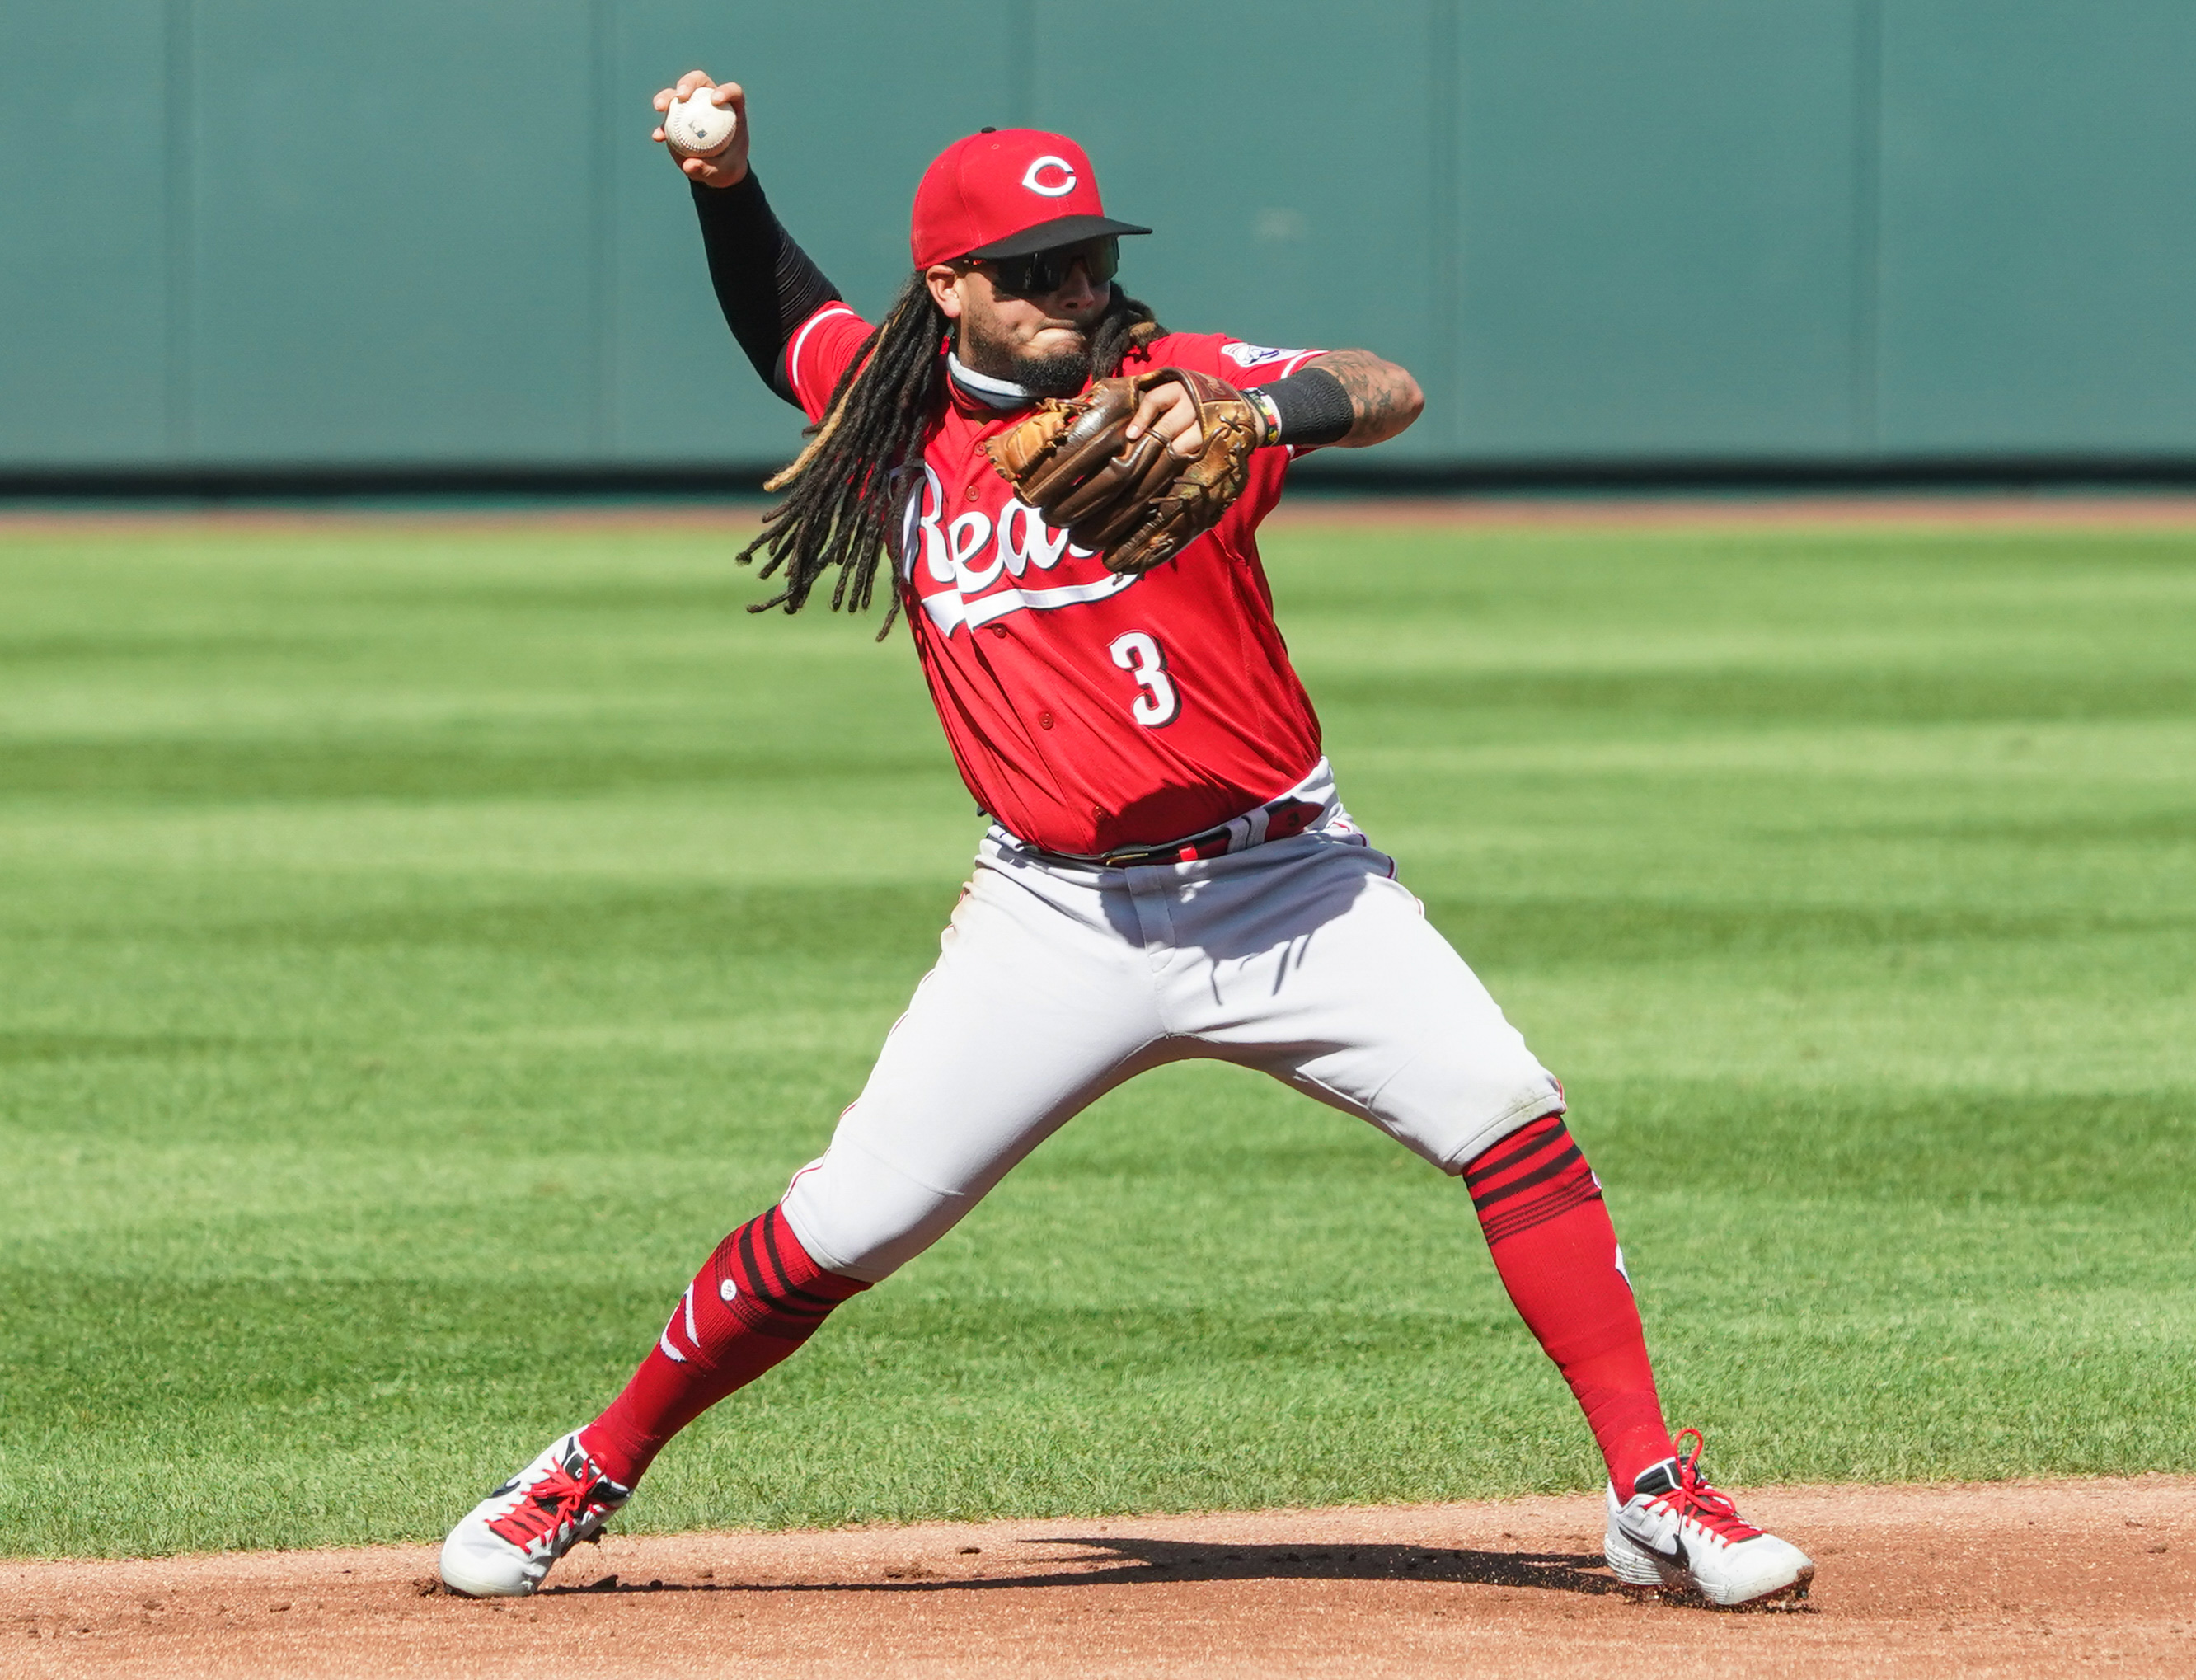 Orioles sign shortstop Freddy Galvis from the Reds